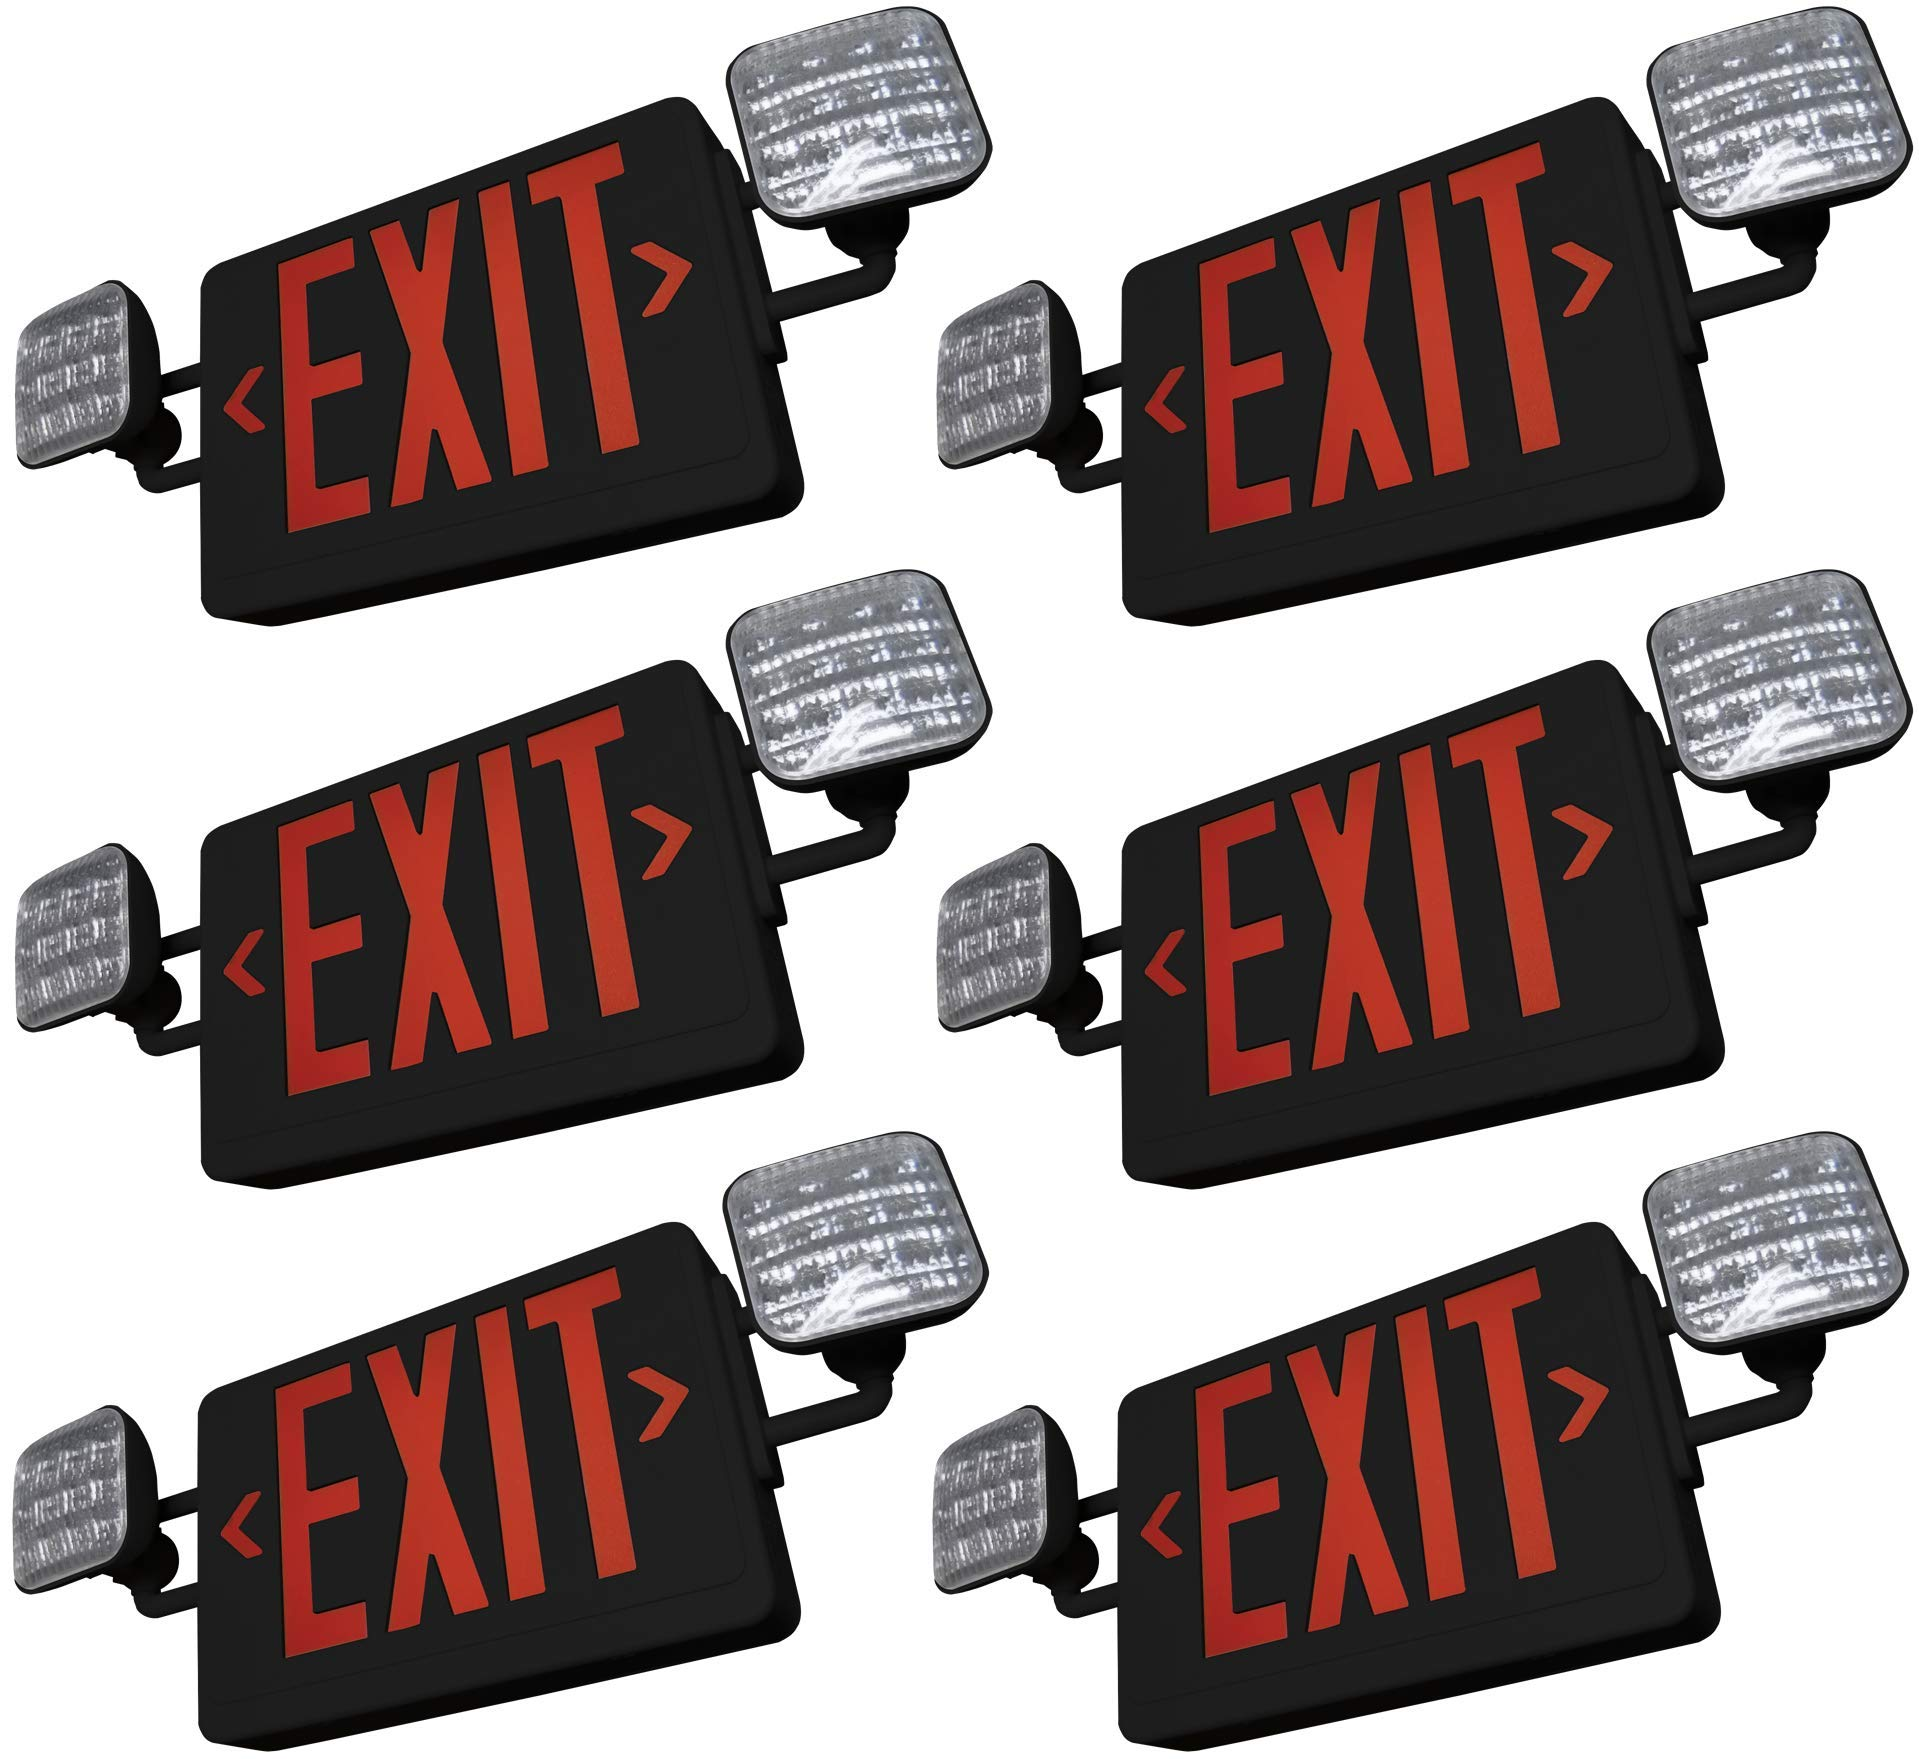 SupremeLED All LED Exit Sign & Emergency Light Combo with Battery Backup (Red Black 6 Pack)